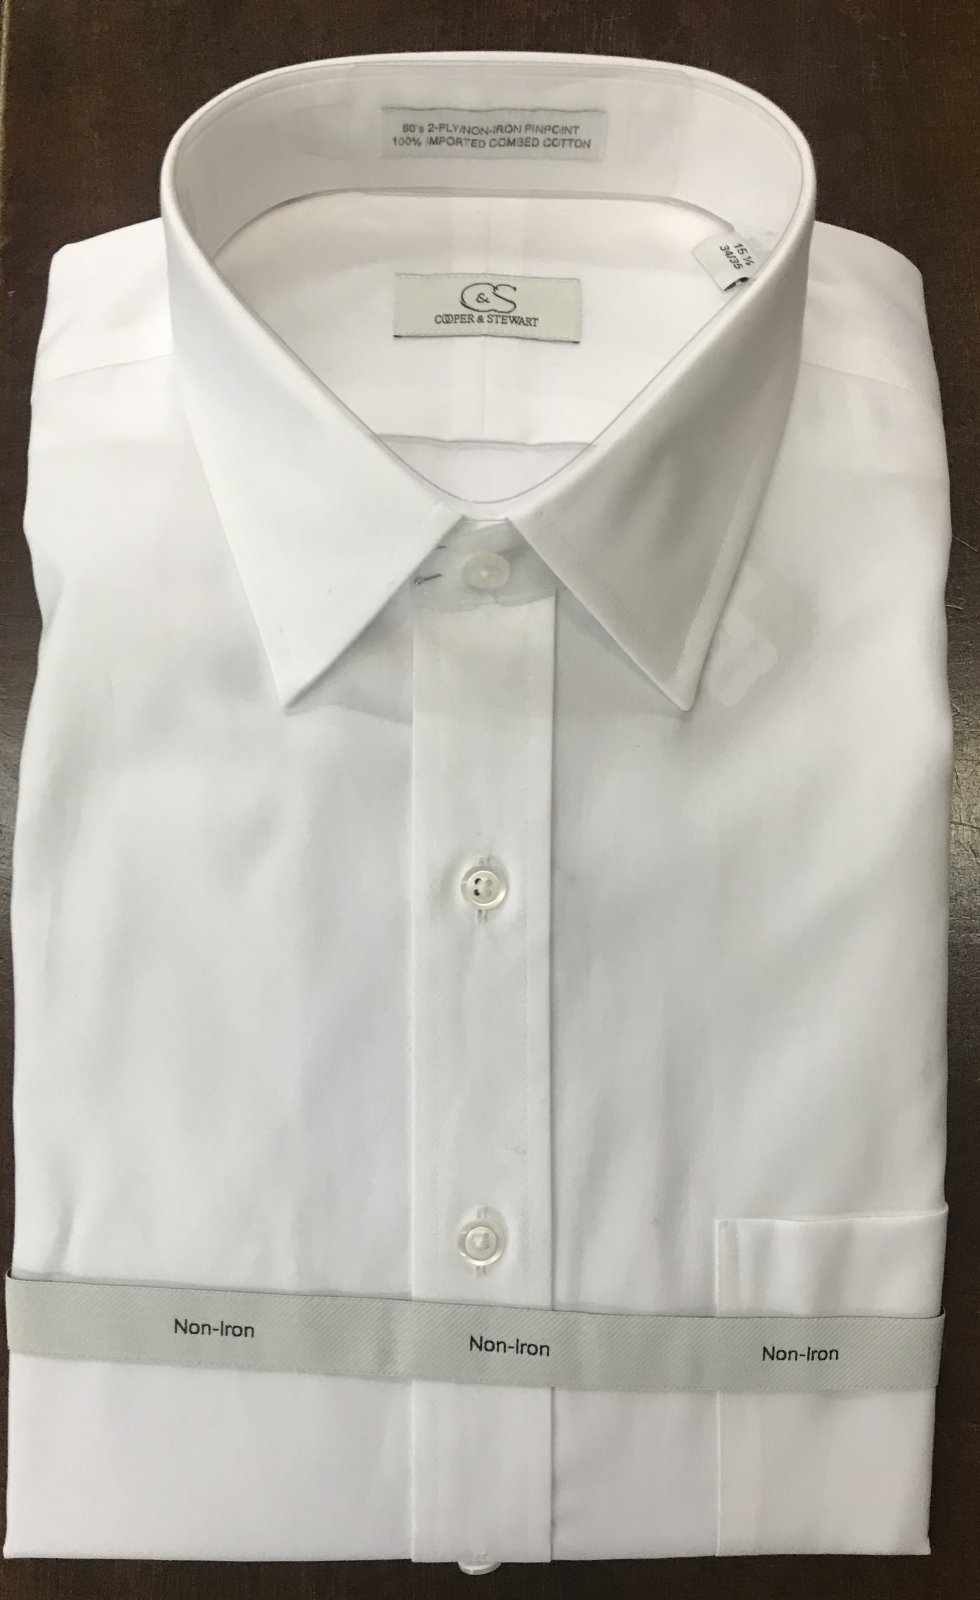 Cooper & Stewart LS Dress Shirt 20-1080